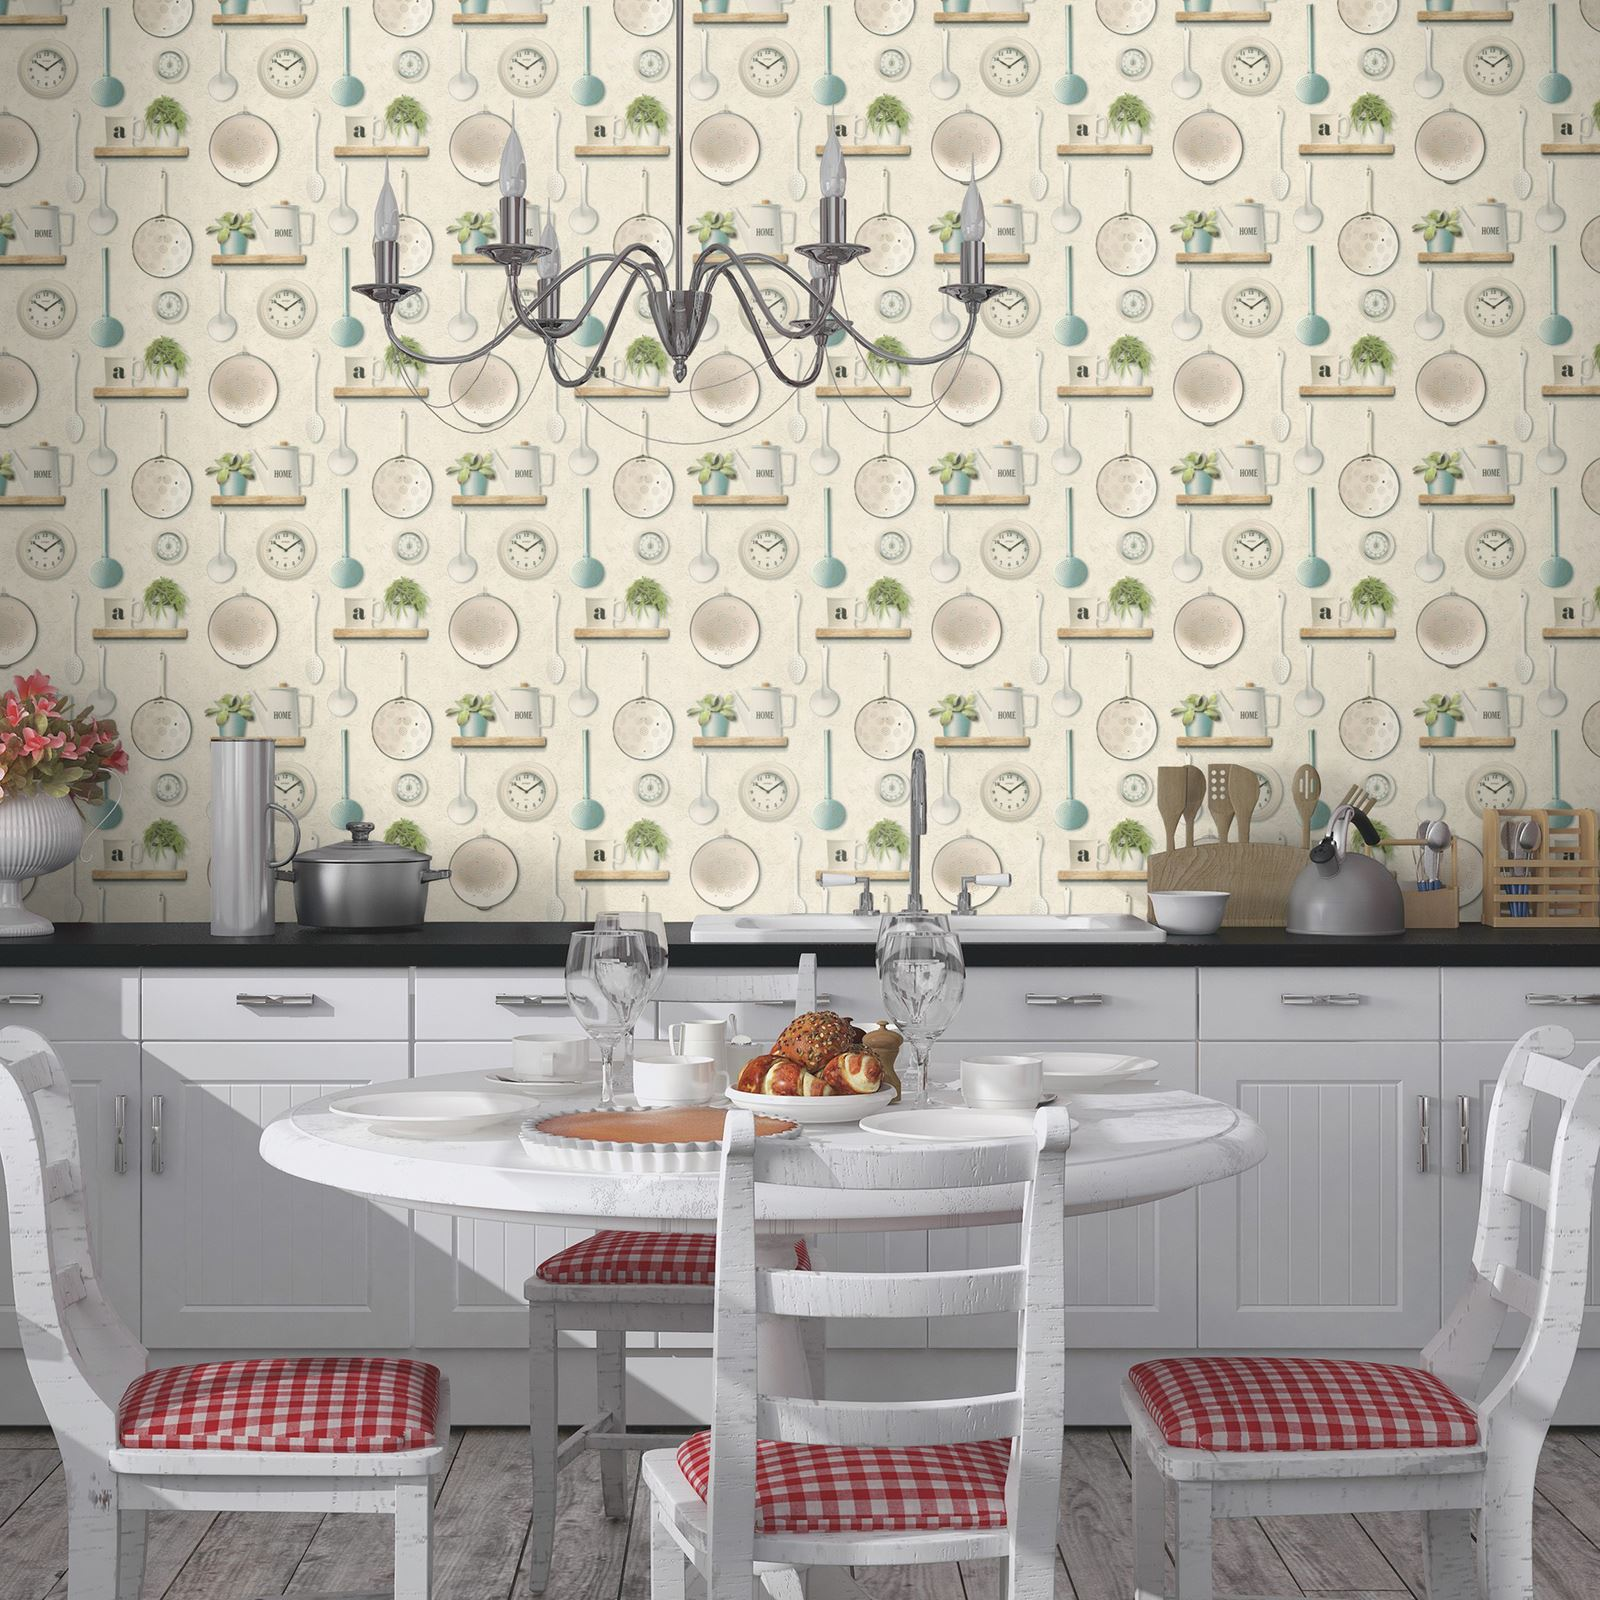 Kitchen Utensils Wallpaper rasch kitchen inspired wallpaper coffee shop kitchen utensils